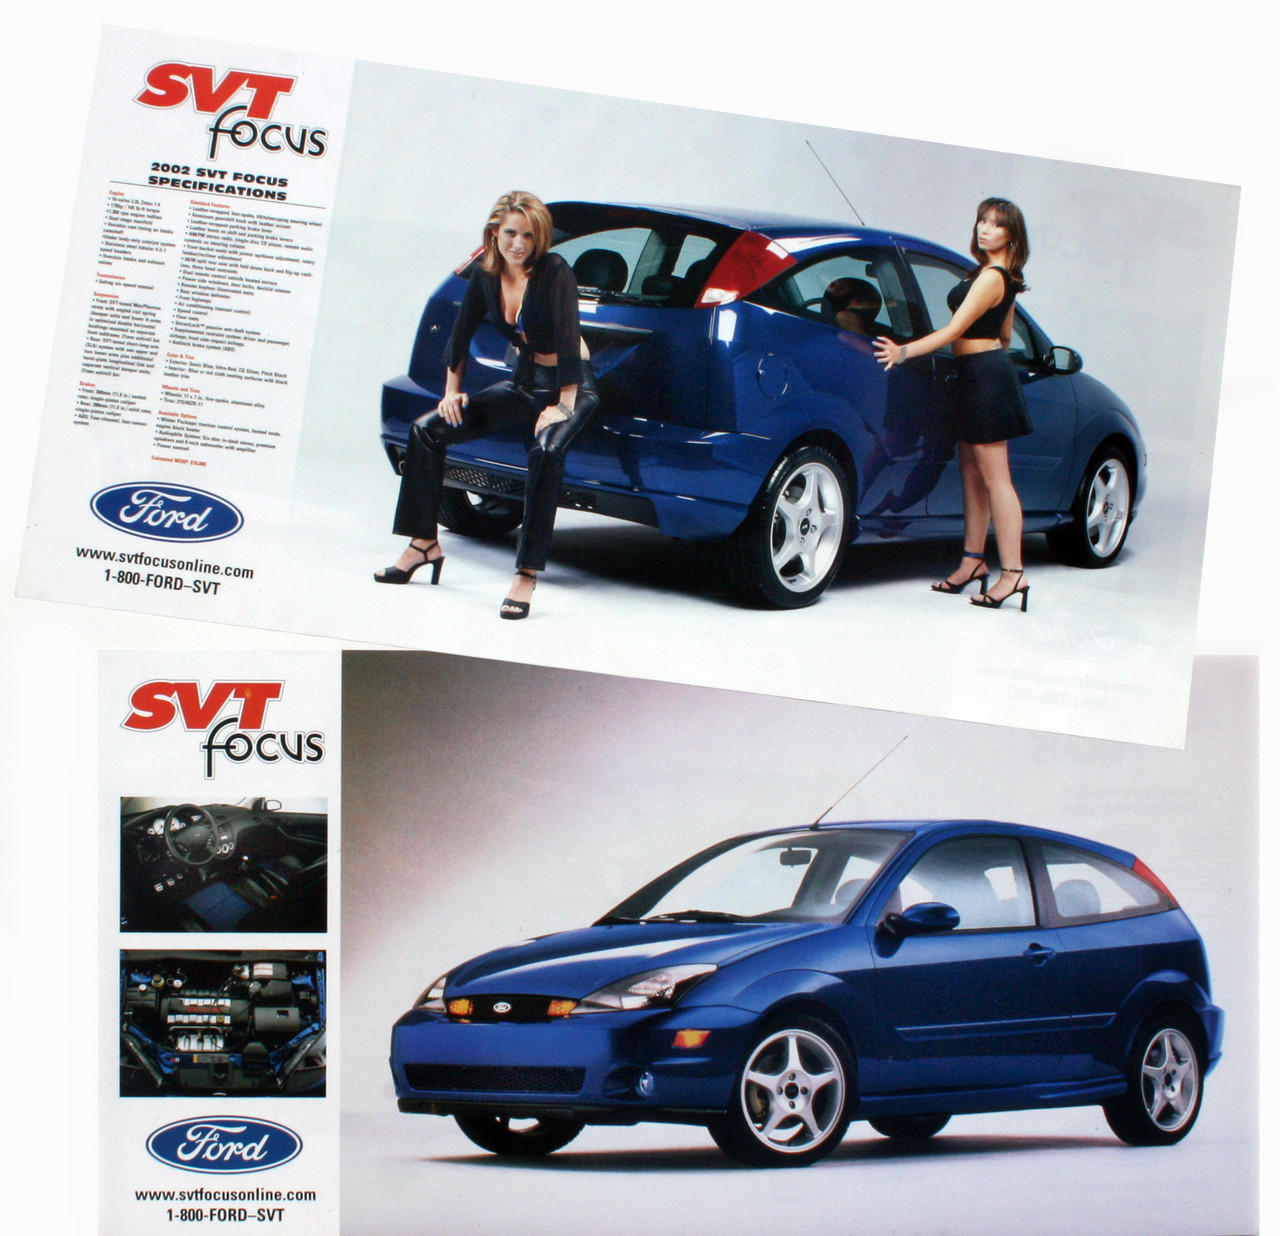 2002 SVT Focus Spec Poster - Double Sided